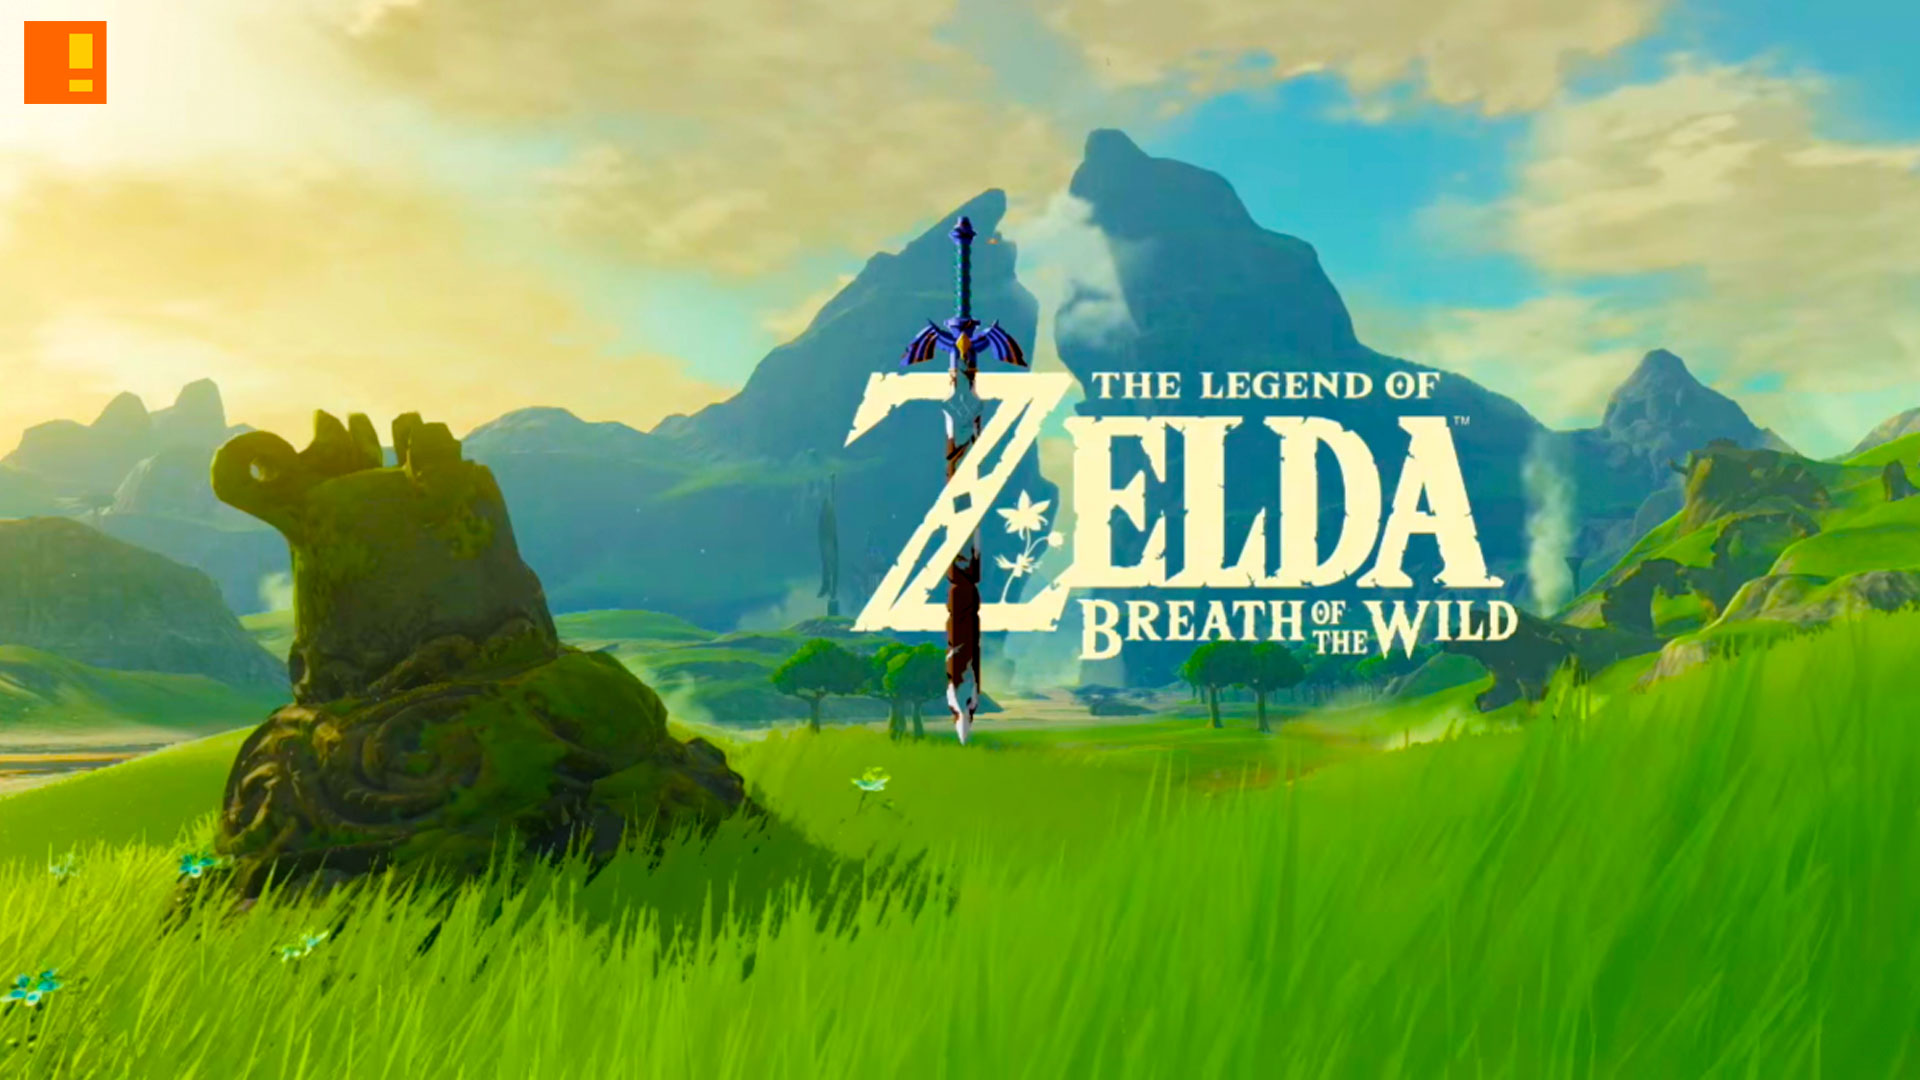 the legend of zelda, breath of the wild, link, zelda, nx, nintendo, gameplay, trailer, e3, e3 2016, e3 expo, the action pixel, @theactionpixel, entertainment on tap